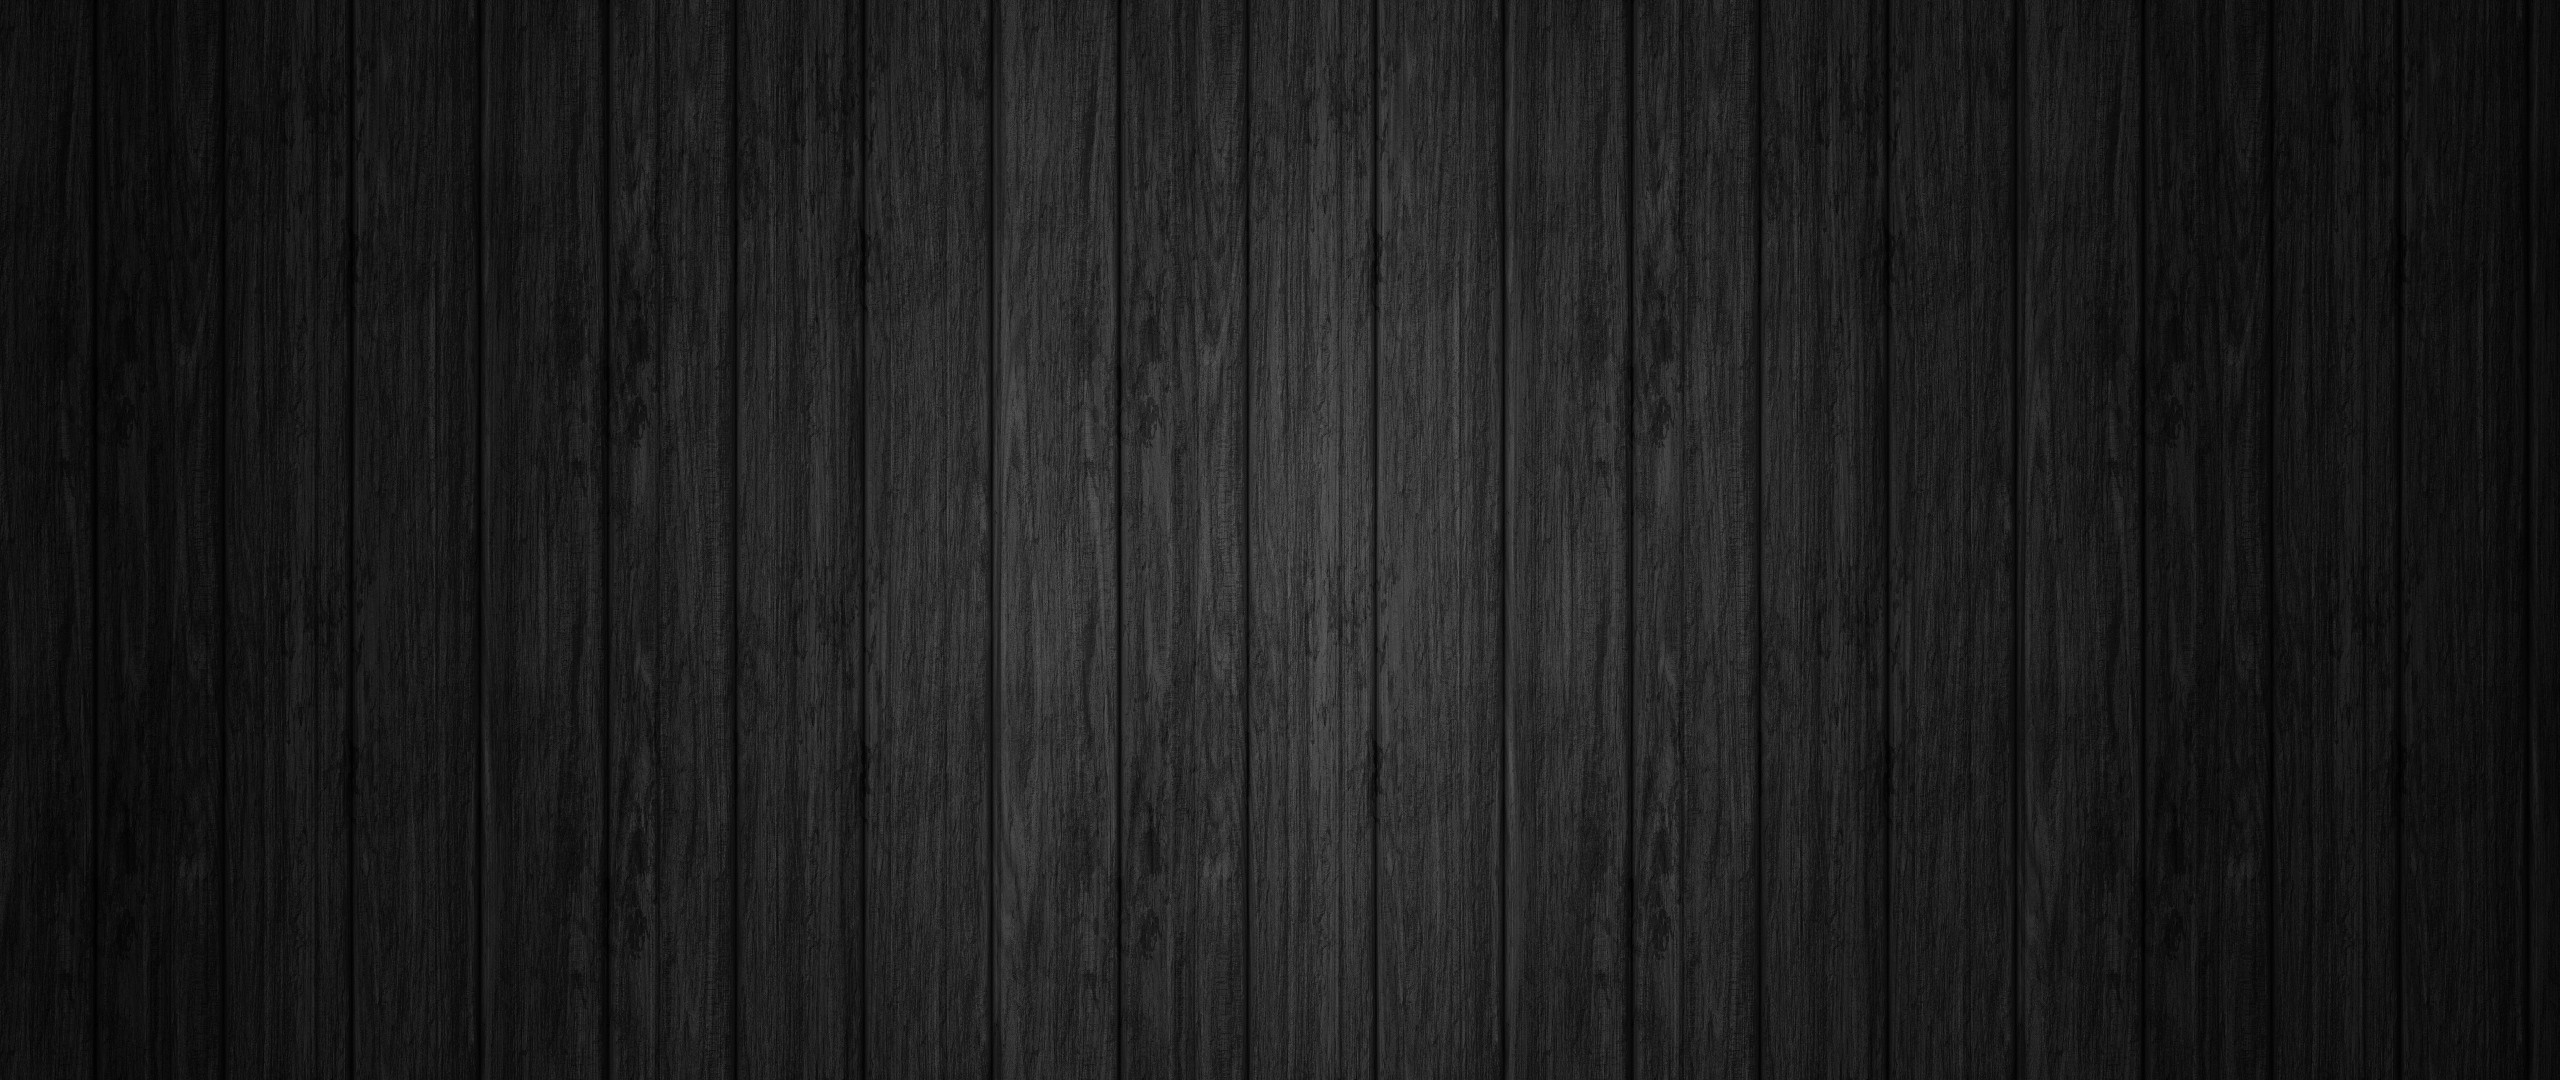 Wood patterns Wallpapers Pictures